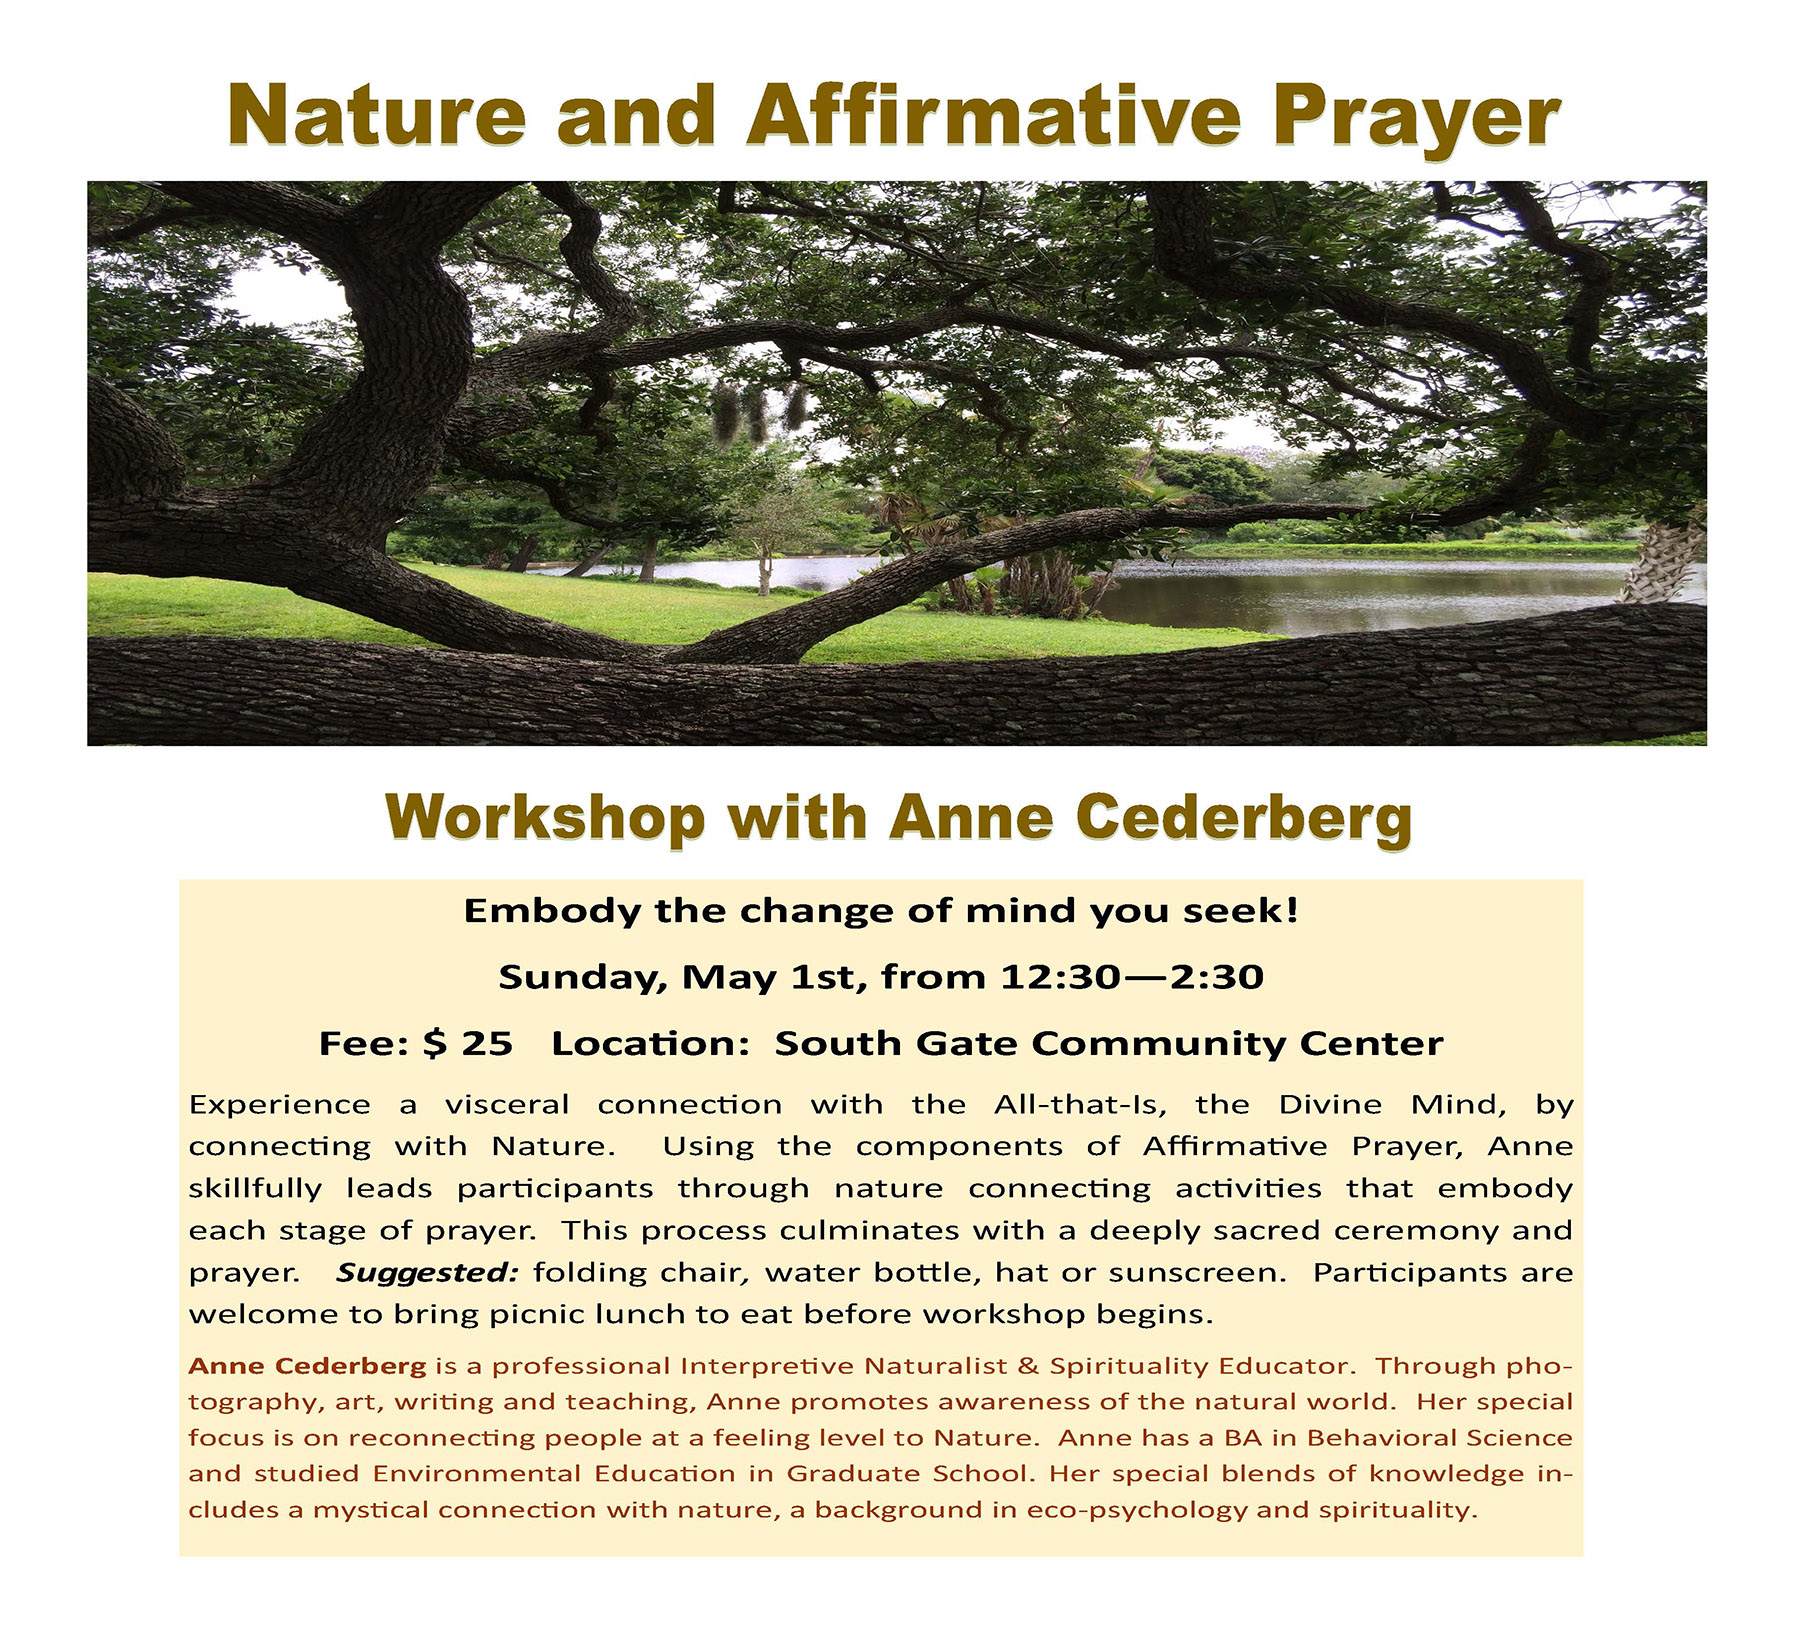 Nature and Affirmative Prayer